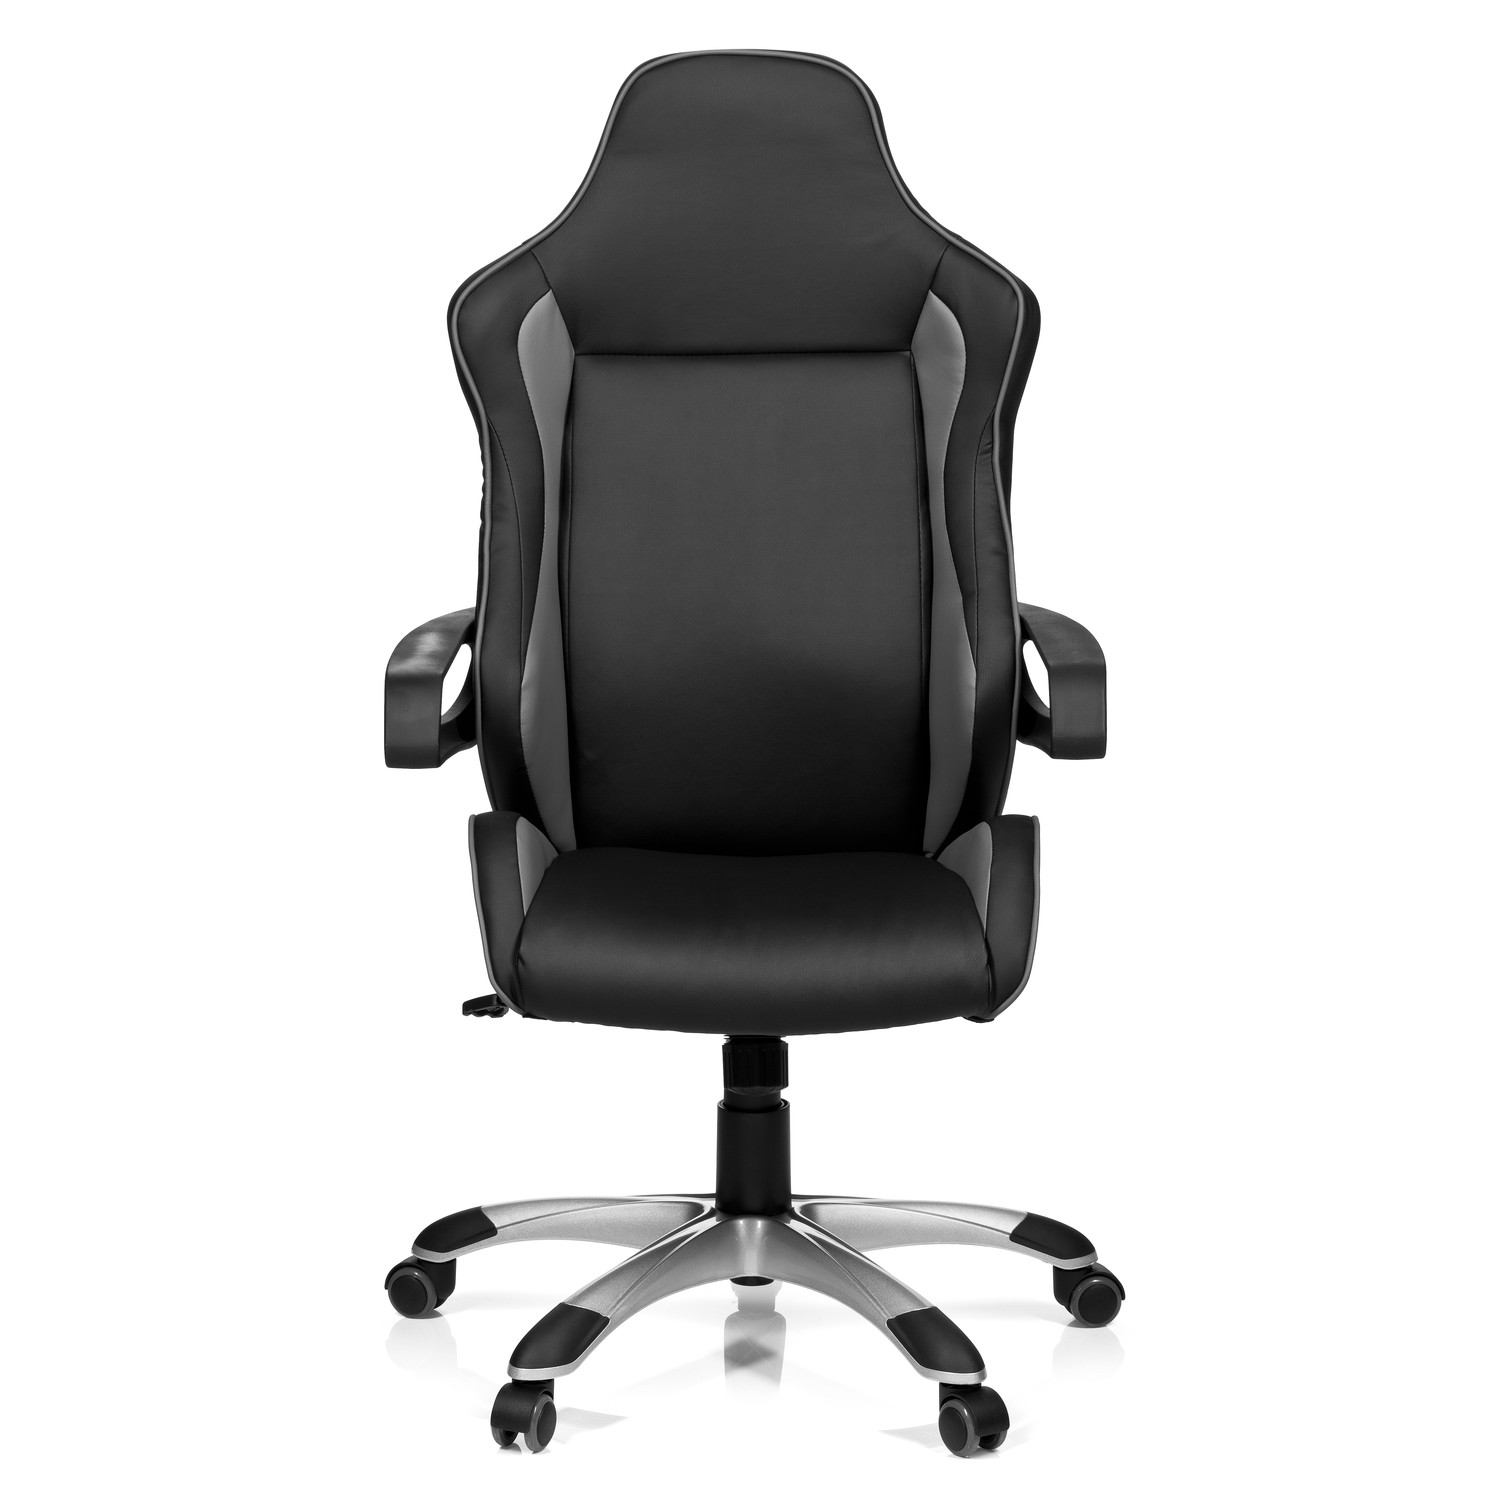 Silla ordenador gaming racer pro en color gris negro for Sillas de ordenador